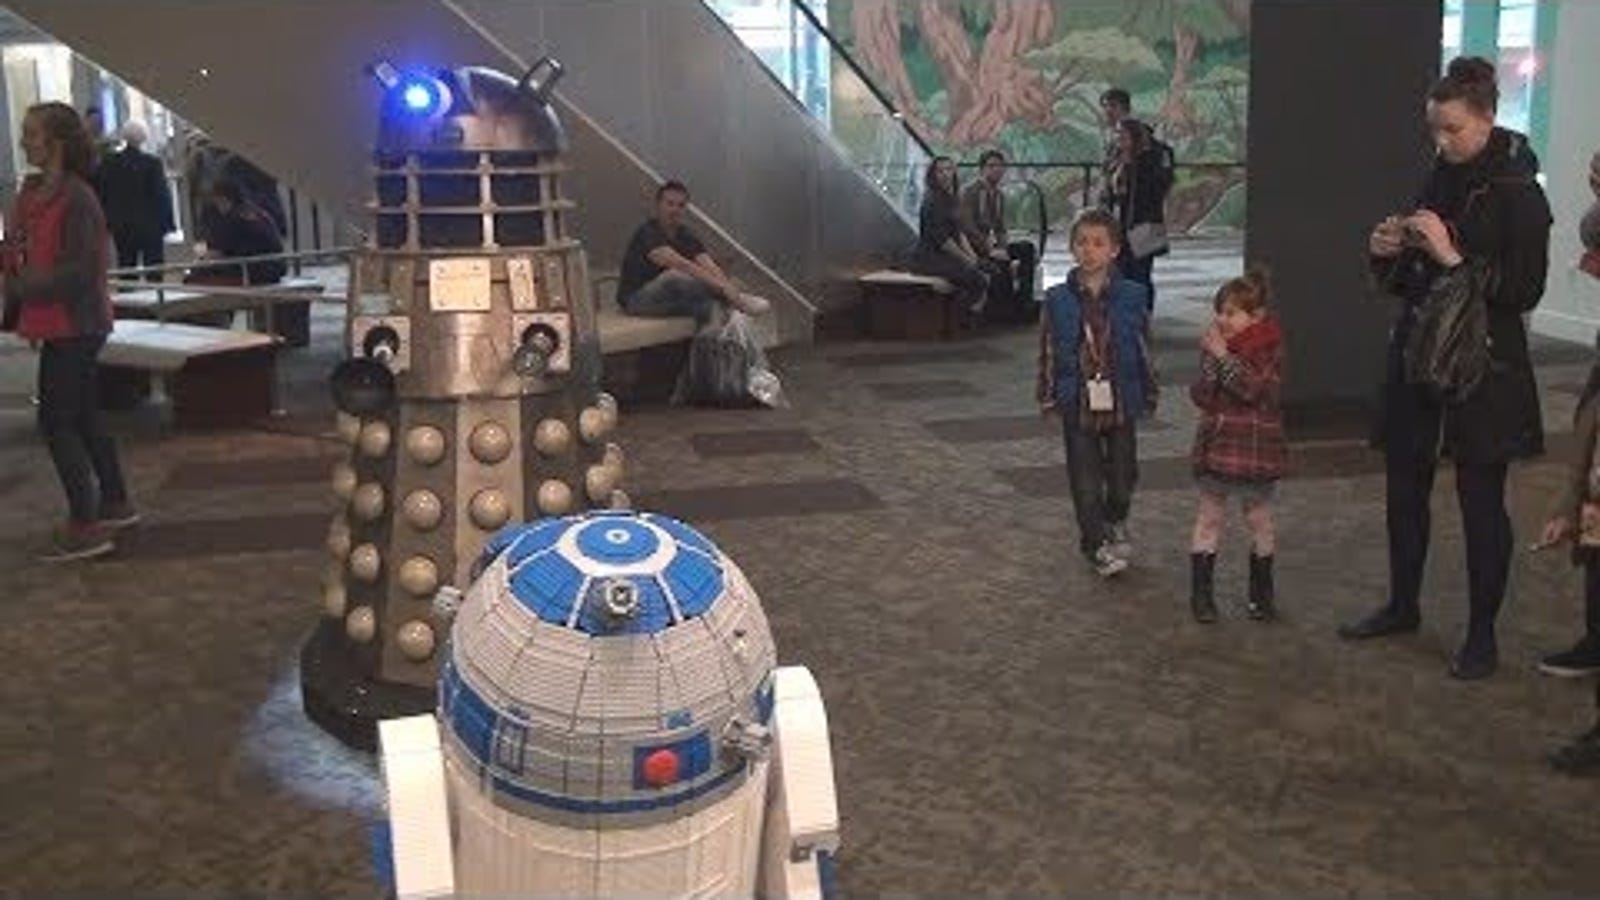 Behold the world's first full-size, functional Lego R2-D2